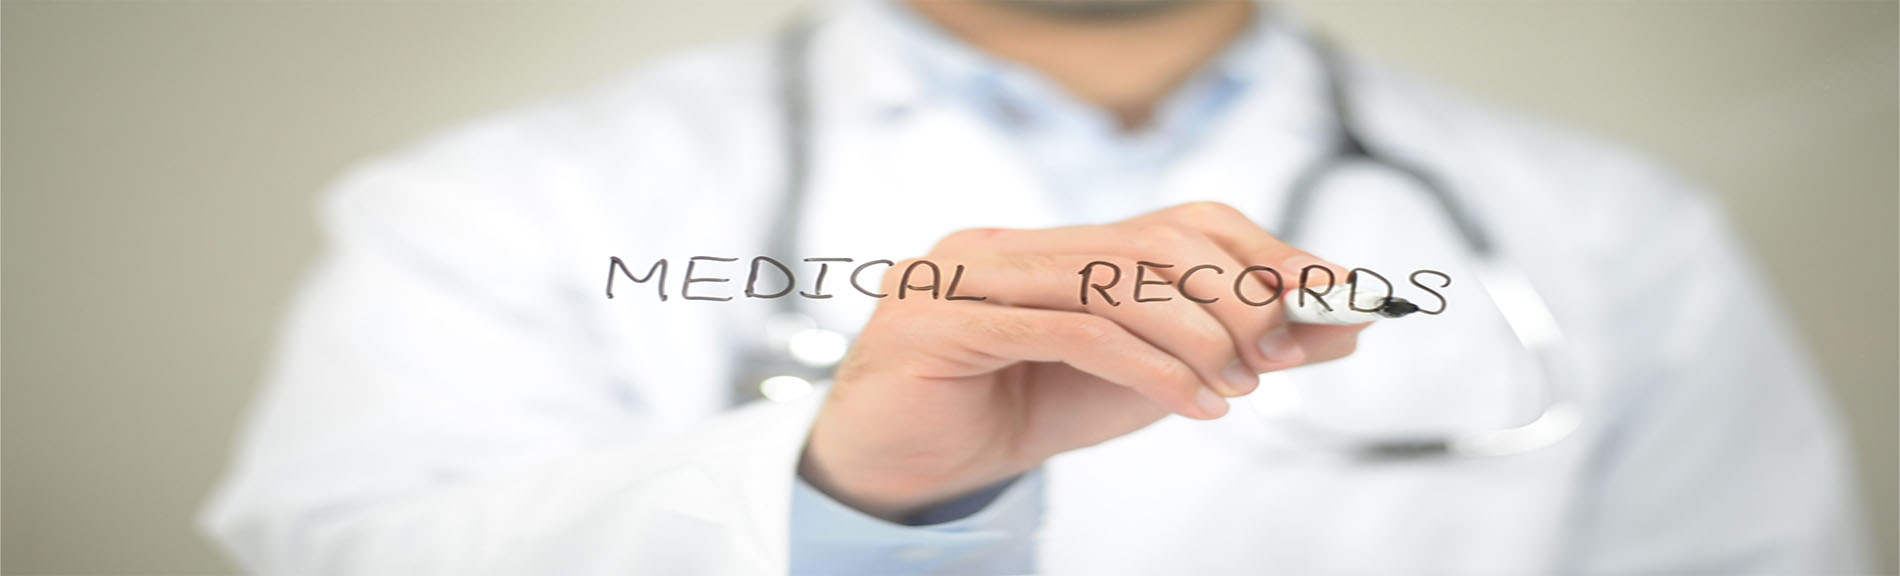 External Medical Records Help Identify USD 4.5 MM In Annual Savings